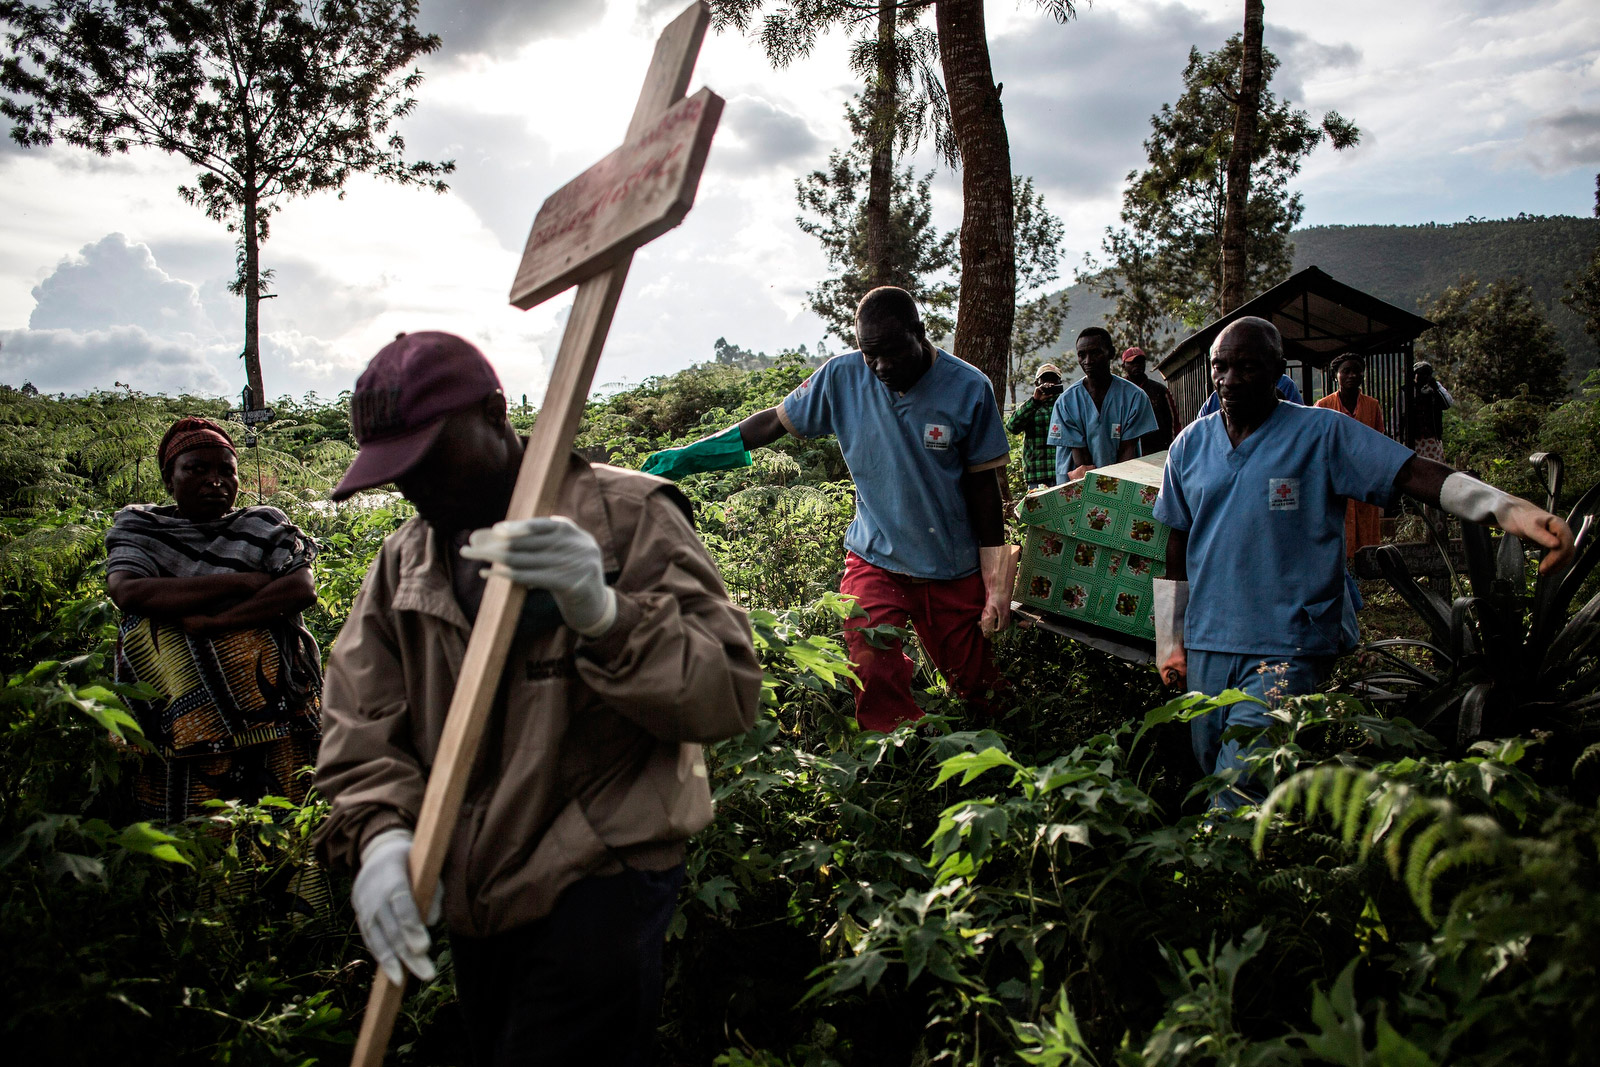 The Ebola death toll exceeds 1,600. This is what it's like on the front lines